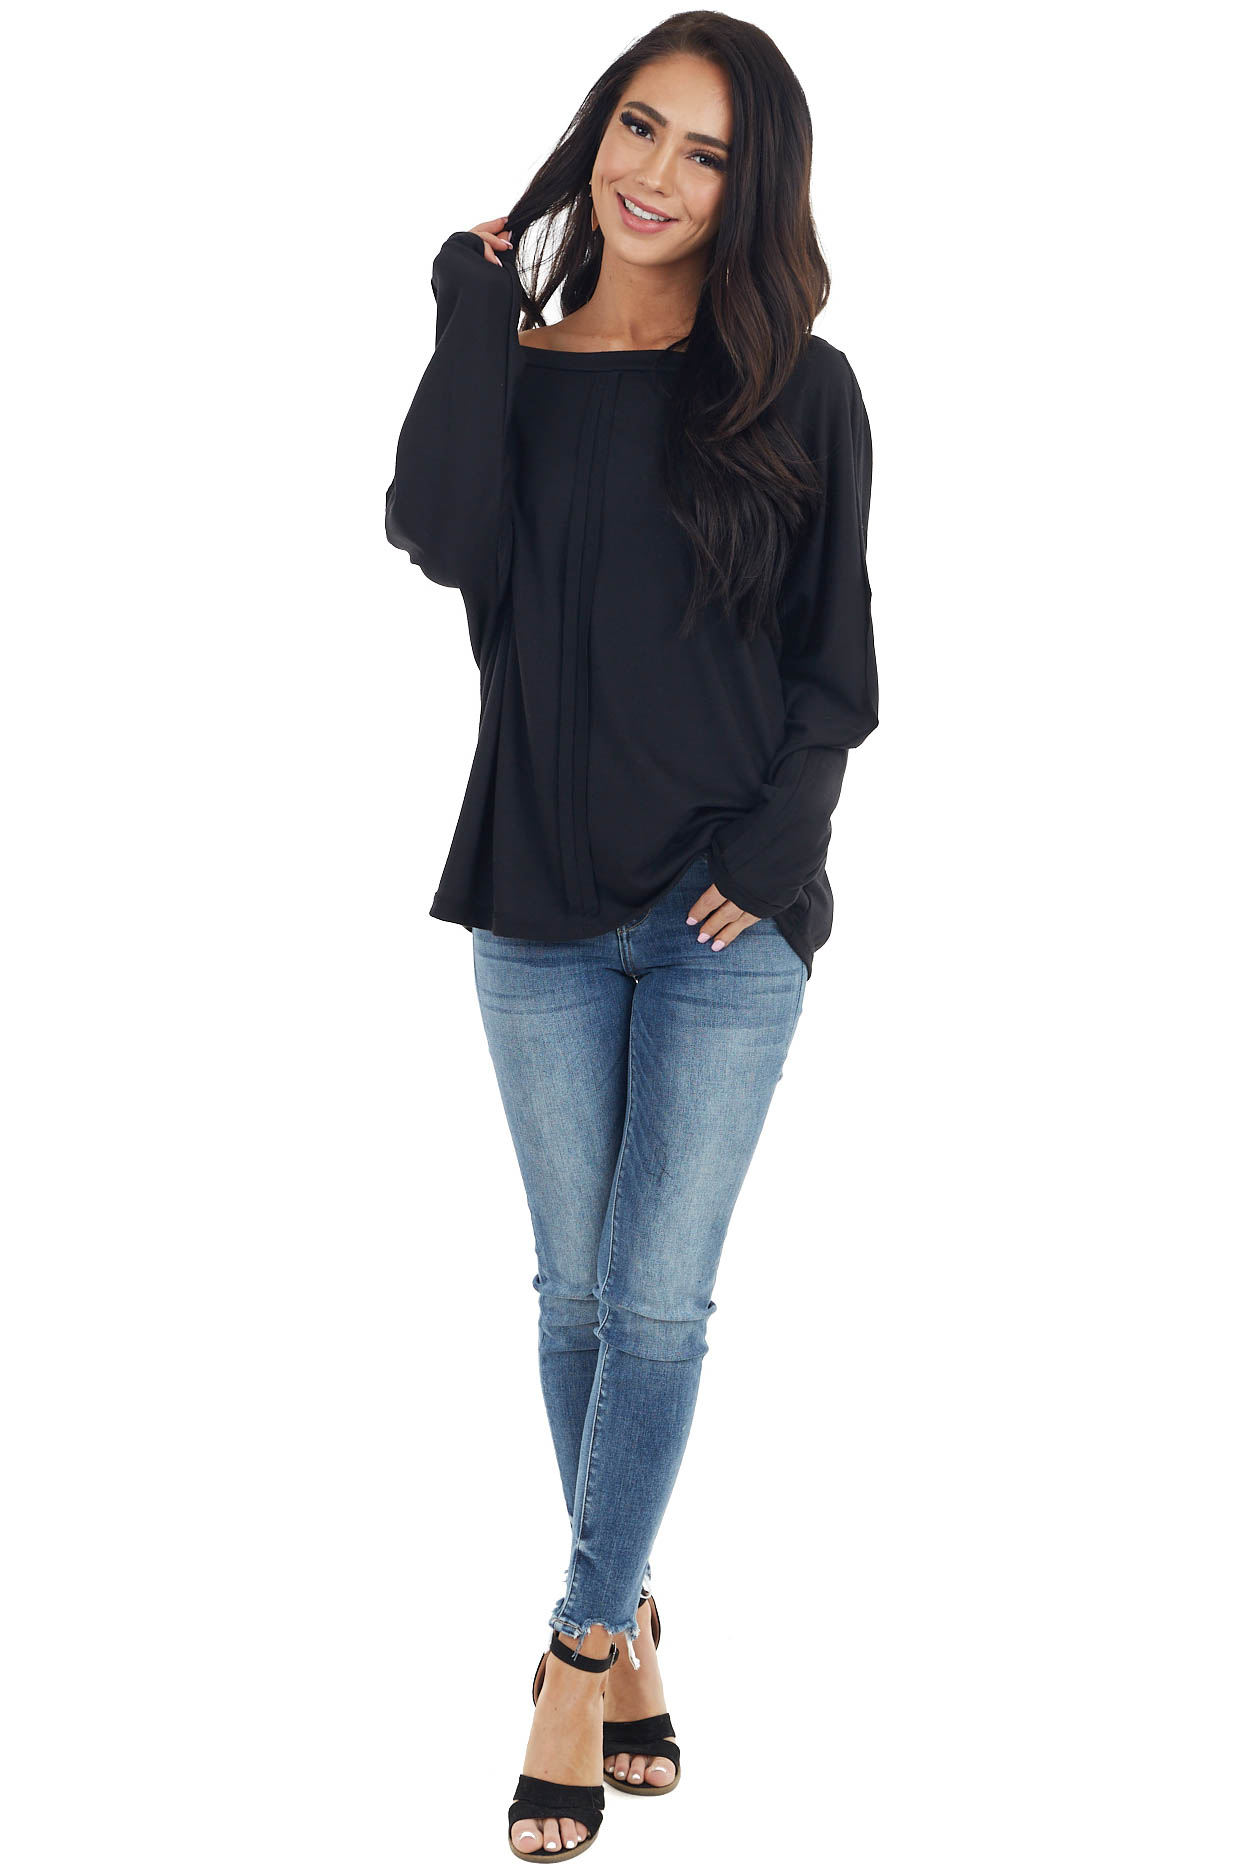 Black Long Sleeve Knit Top with Outseam Details